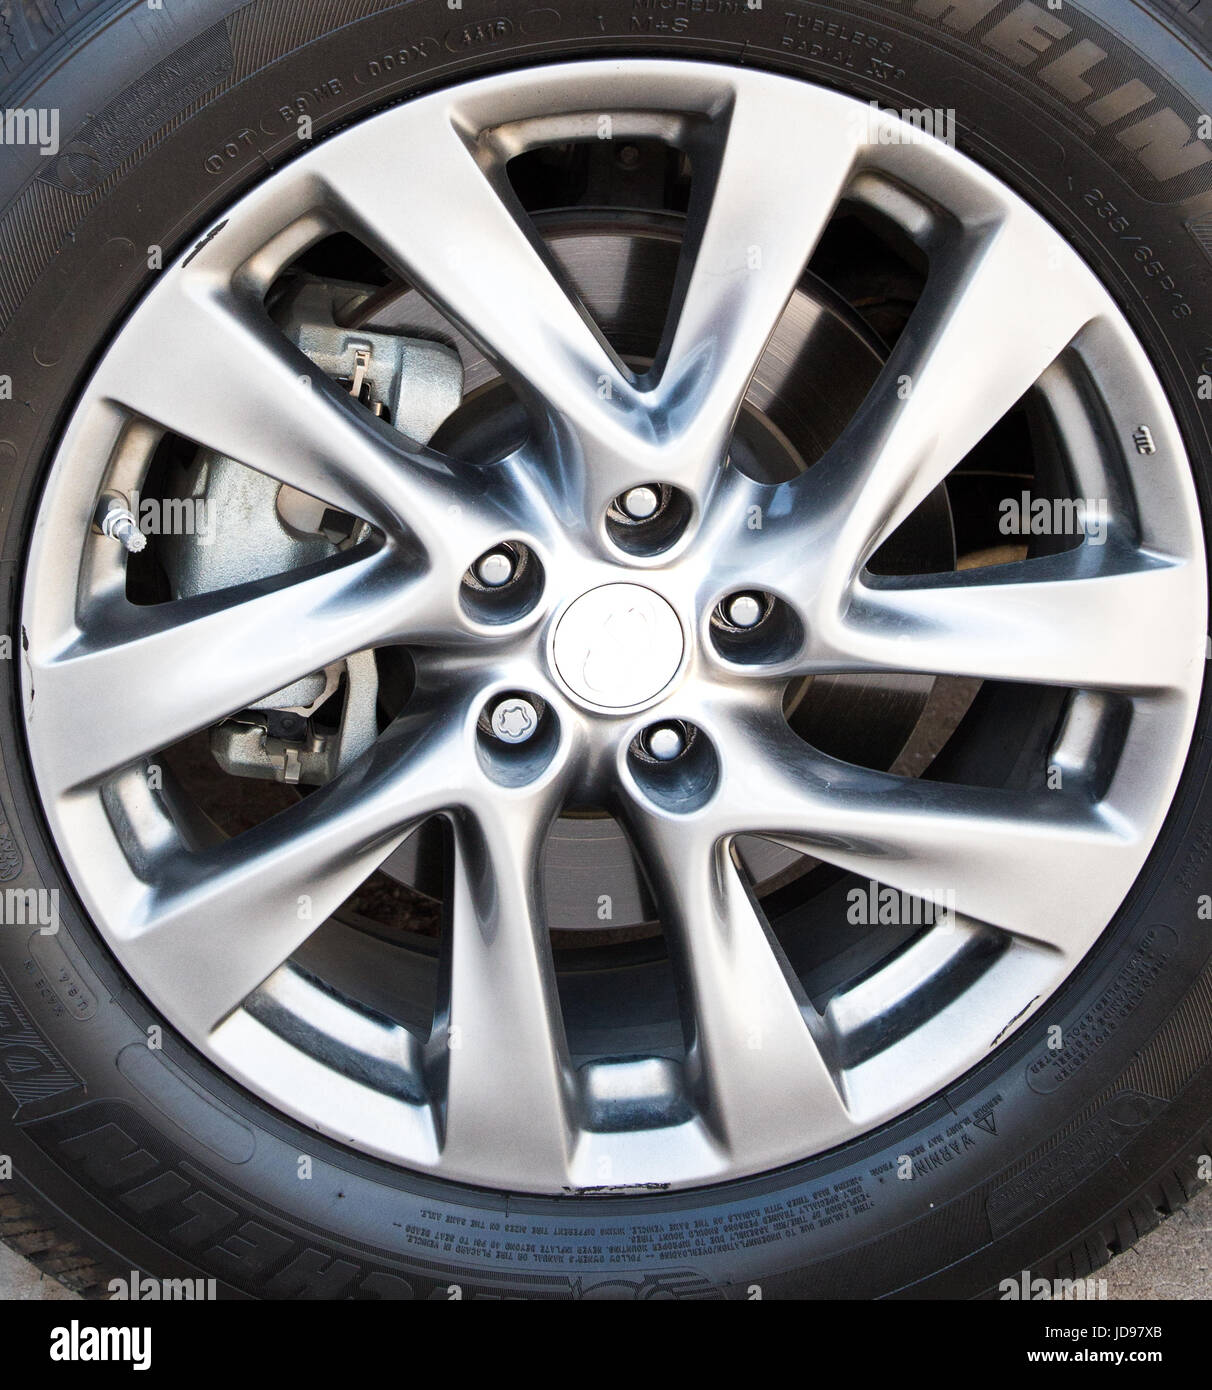 Close up of hubcap - Stock Image